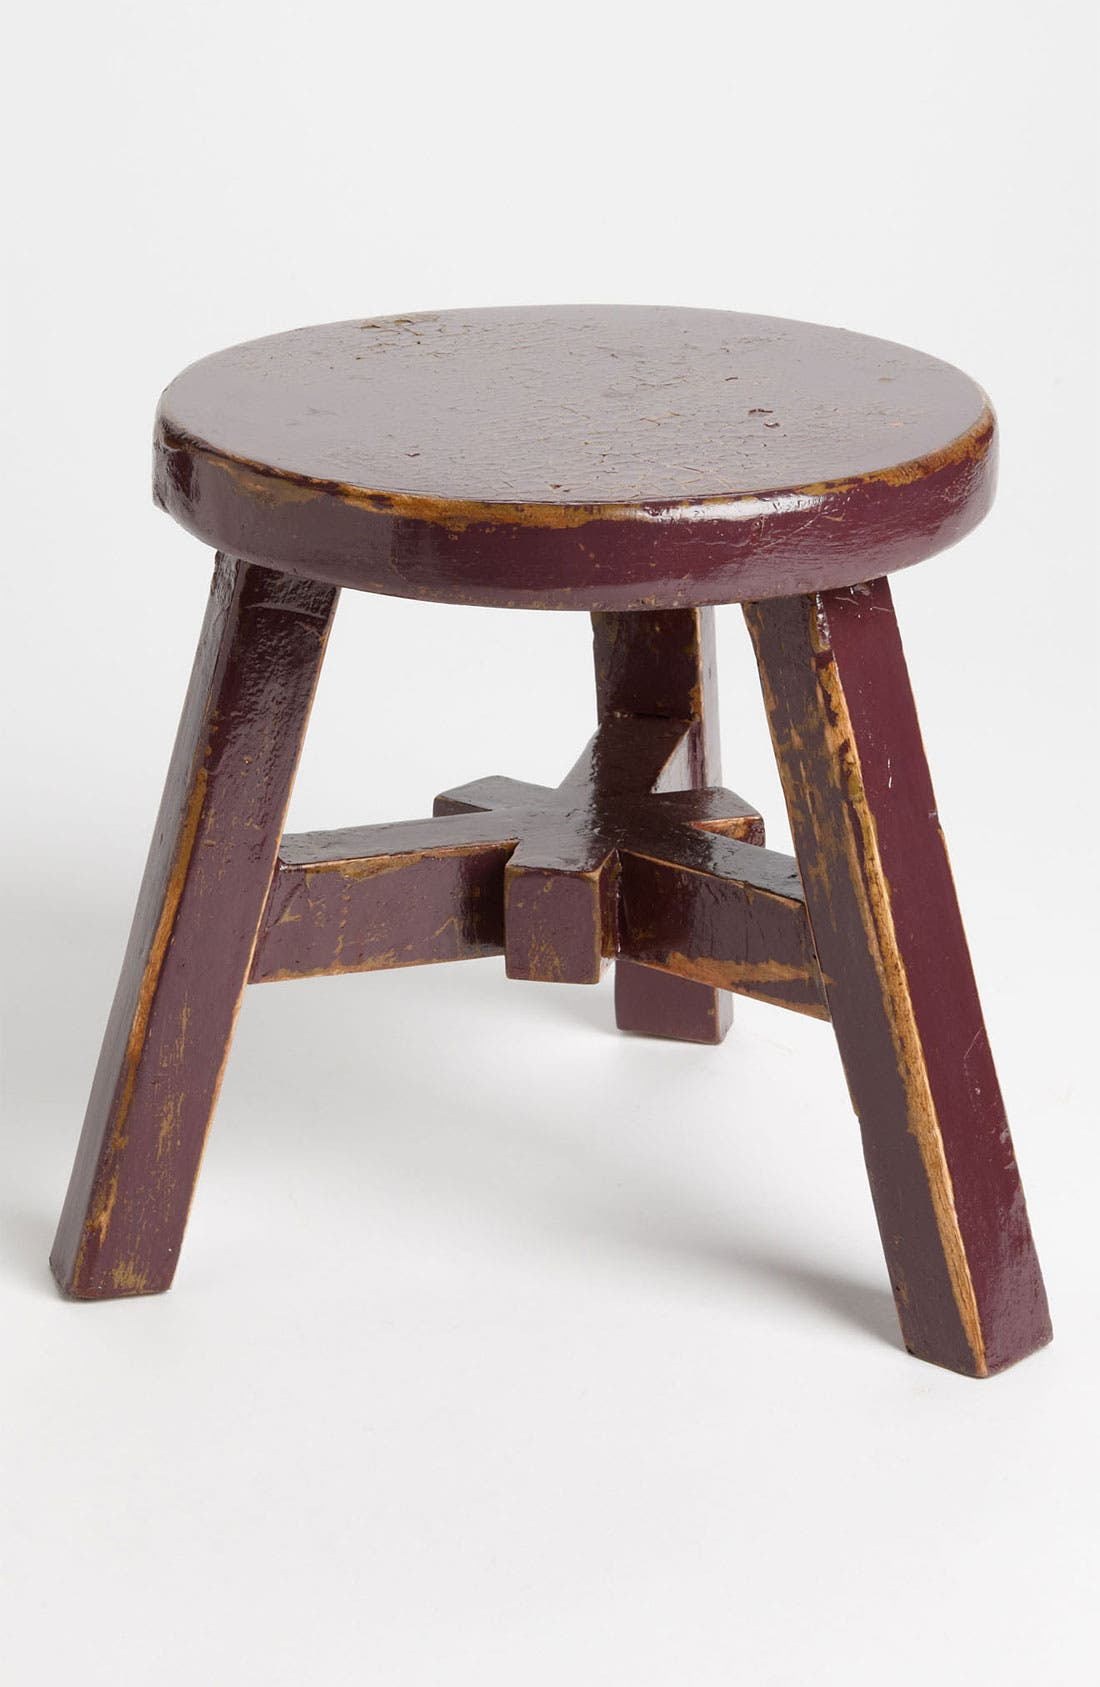 Main Image - Small Decorative Wood Stool